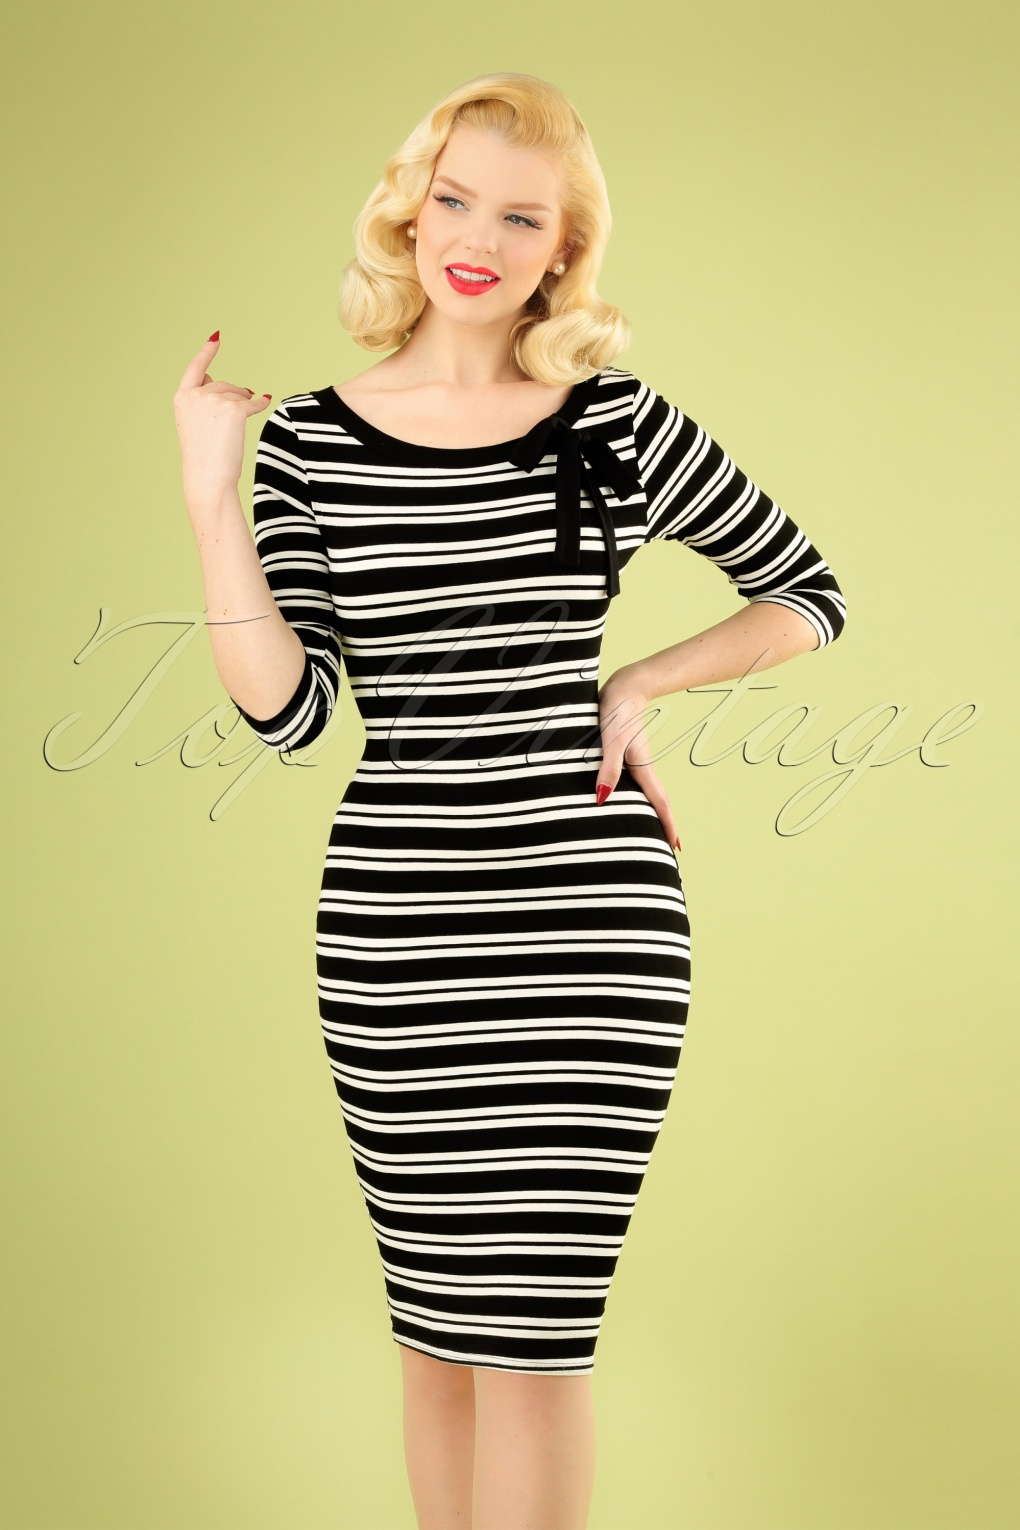 6704068aec789 50s Janice Stripes Pencil Dress in Black and White